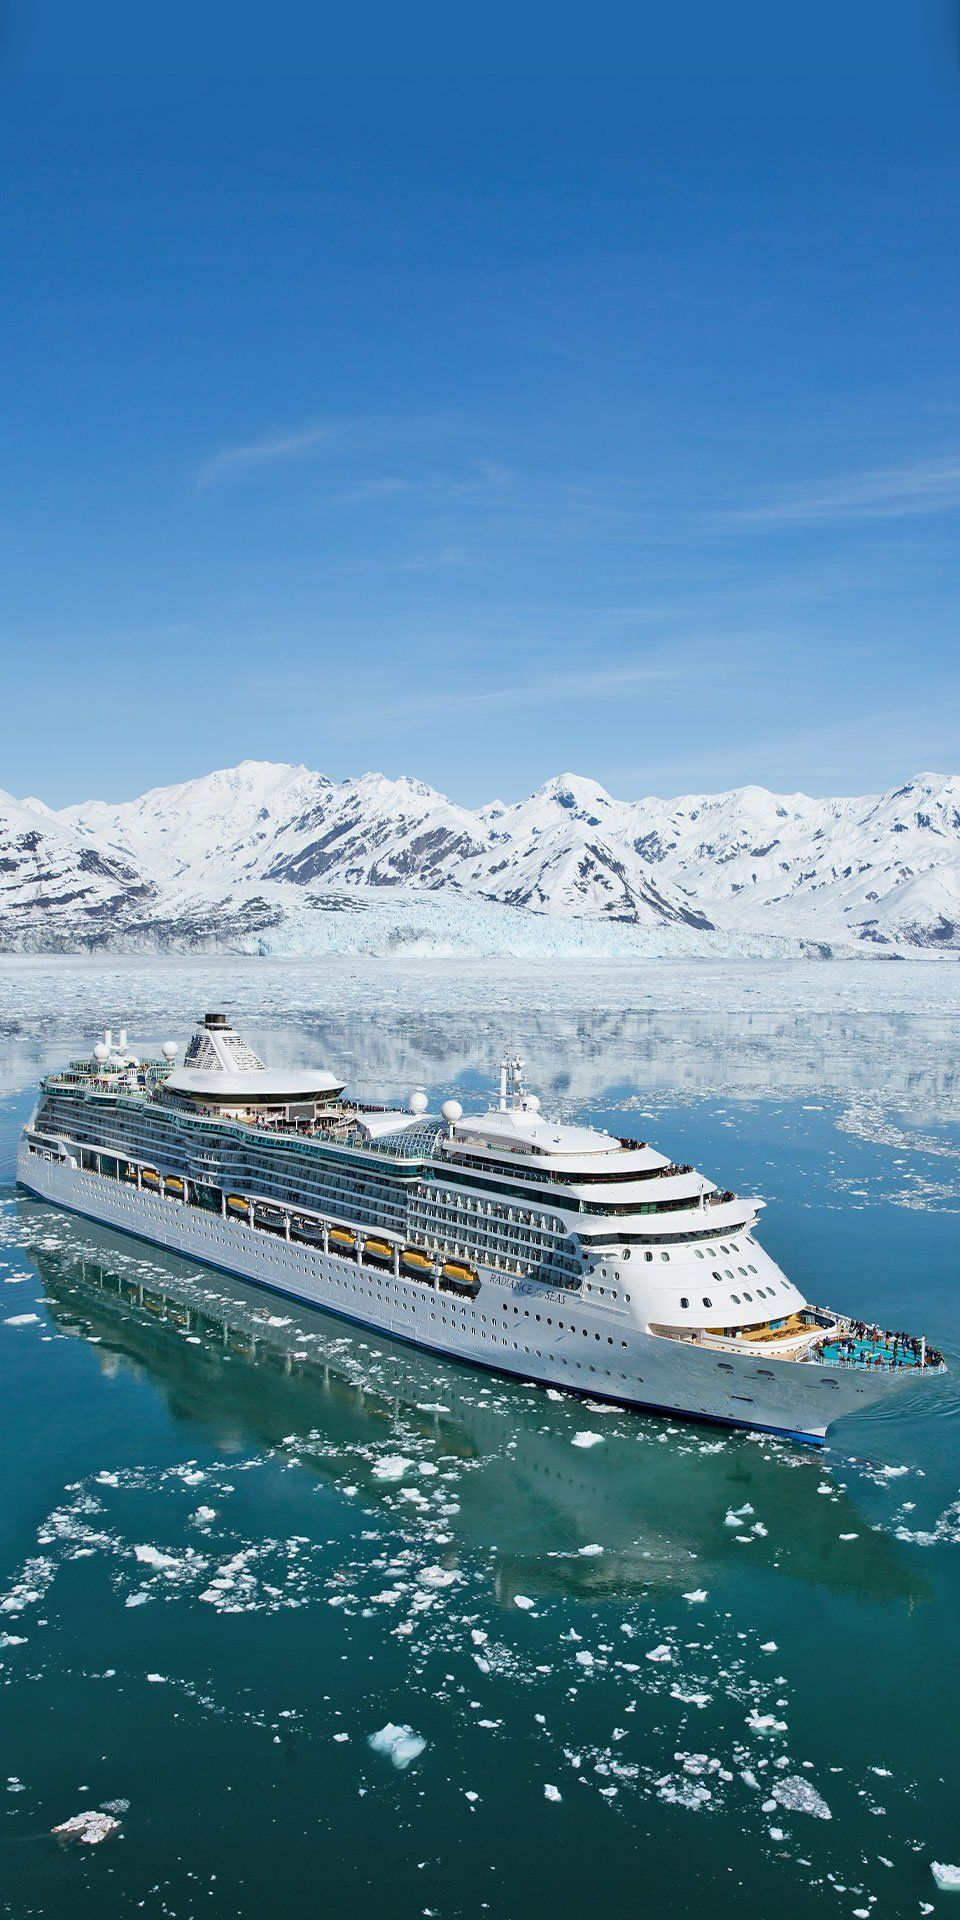 Radiance Of The Seas Next Level Glacier Gazing Is Here Boasting The Most Glass Of Any Royal Royal Caribbean Ships Royal Caribbean Cruise Cruise Photography